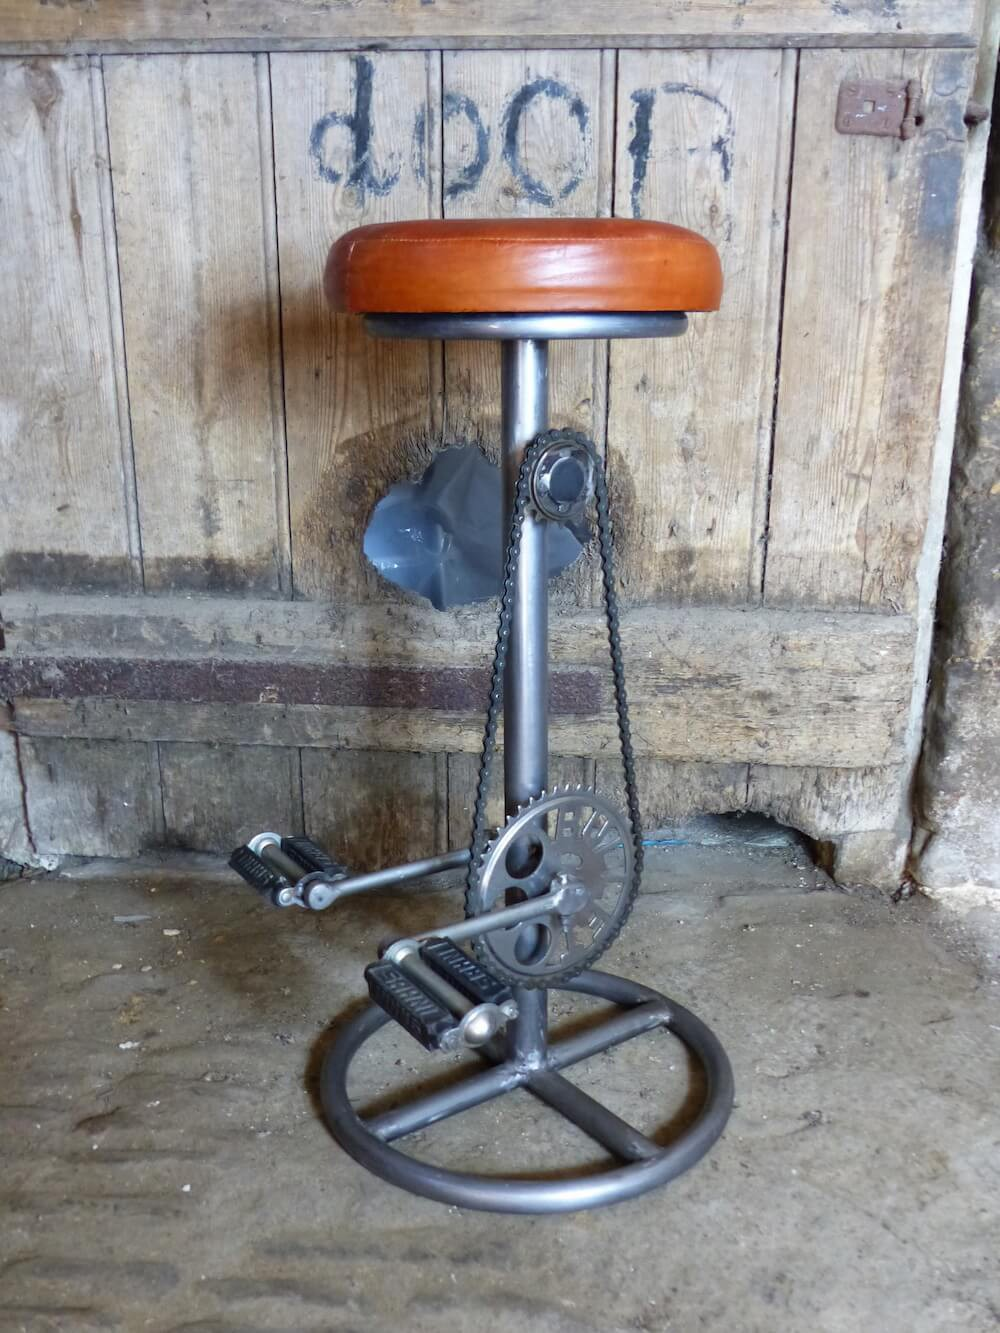 Bike Seat Pedal Bar Stools - Tan Leather Bar Stools With Bike Pedals